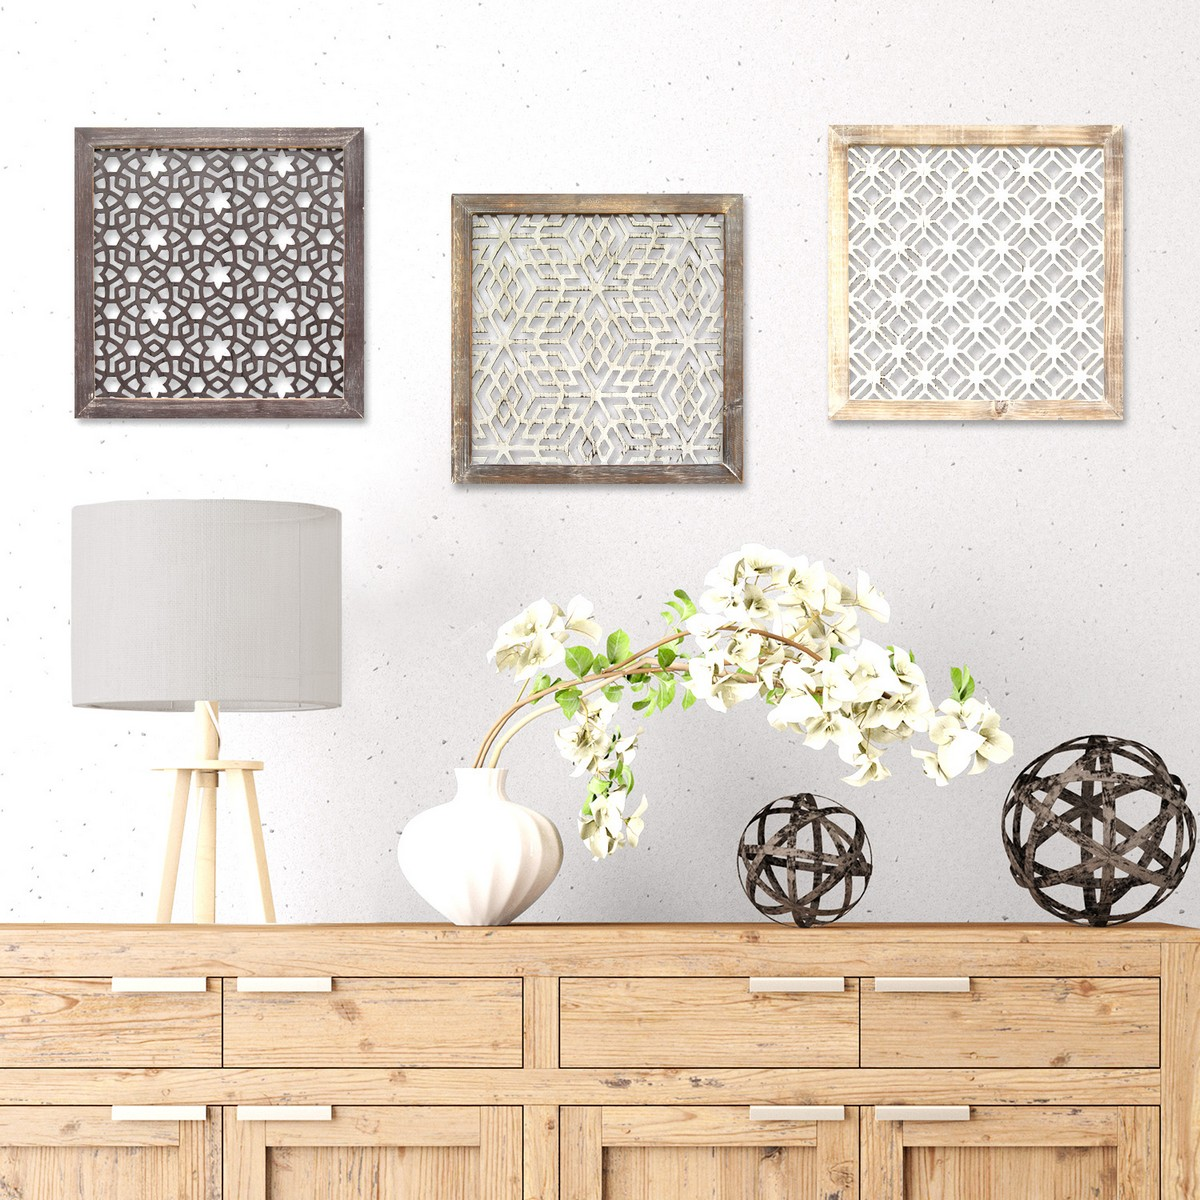 Stratton Home Decor Framed Laser-Cut Wall Decor (1pc) - Distressed White